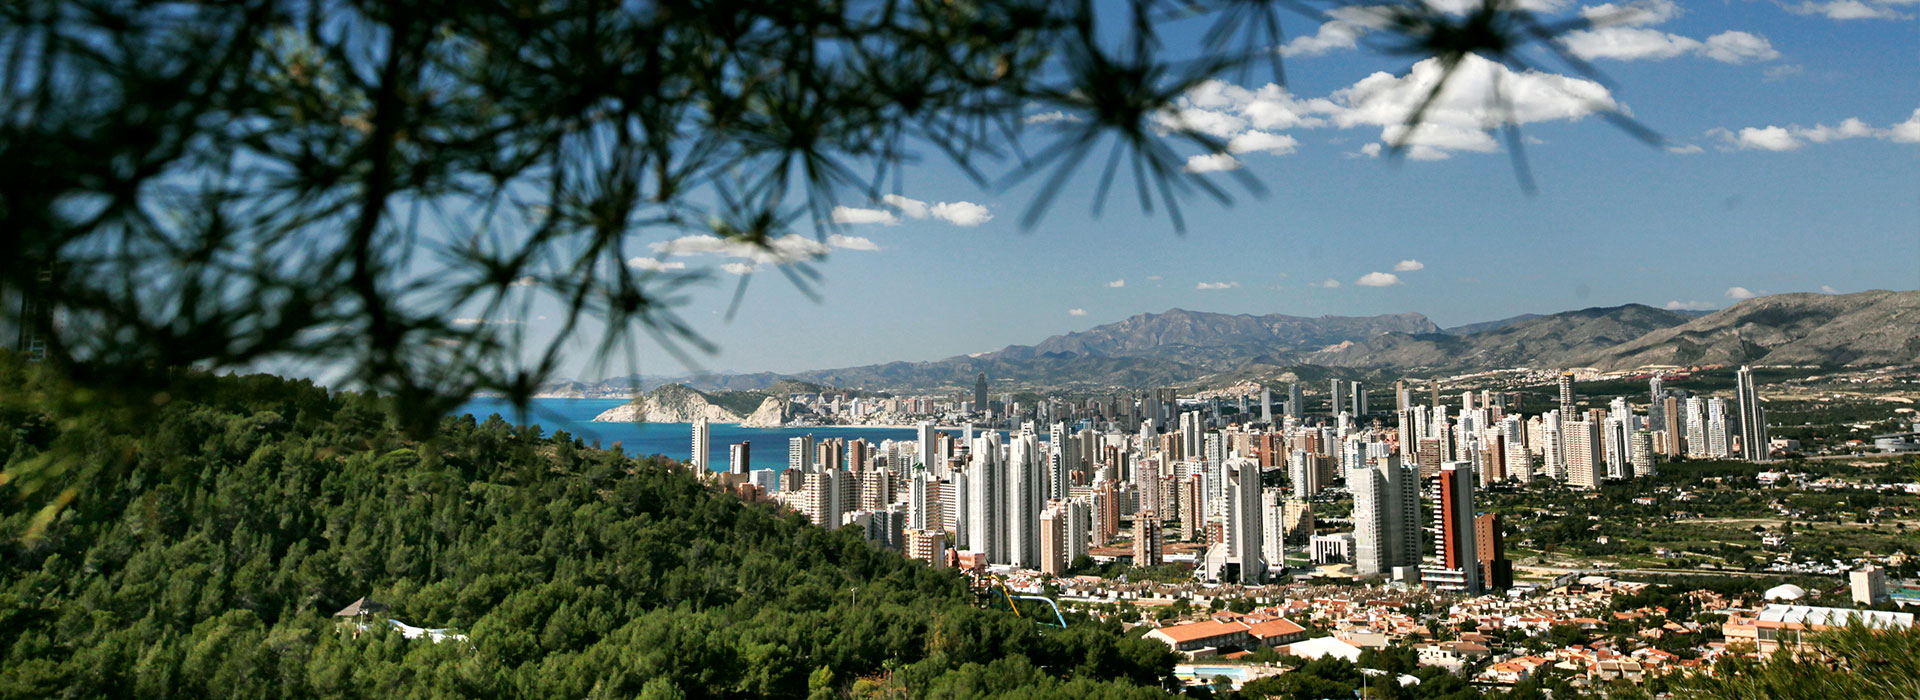 Discover Benidorm on a route through its skyscrapers